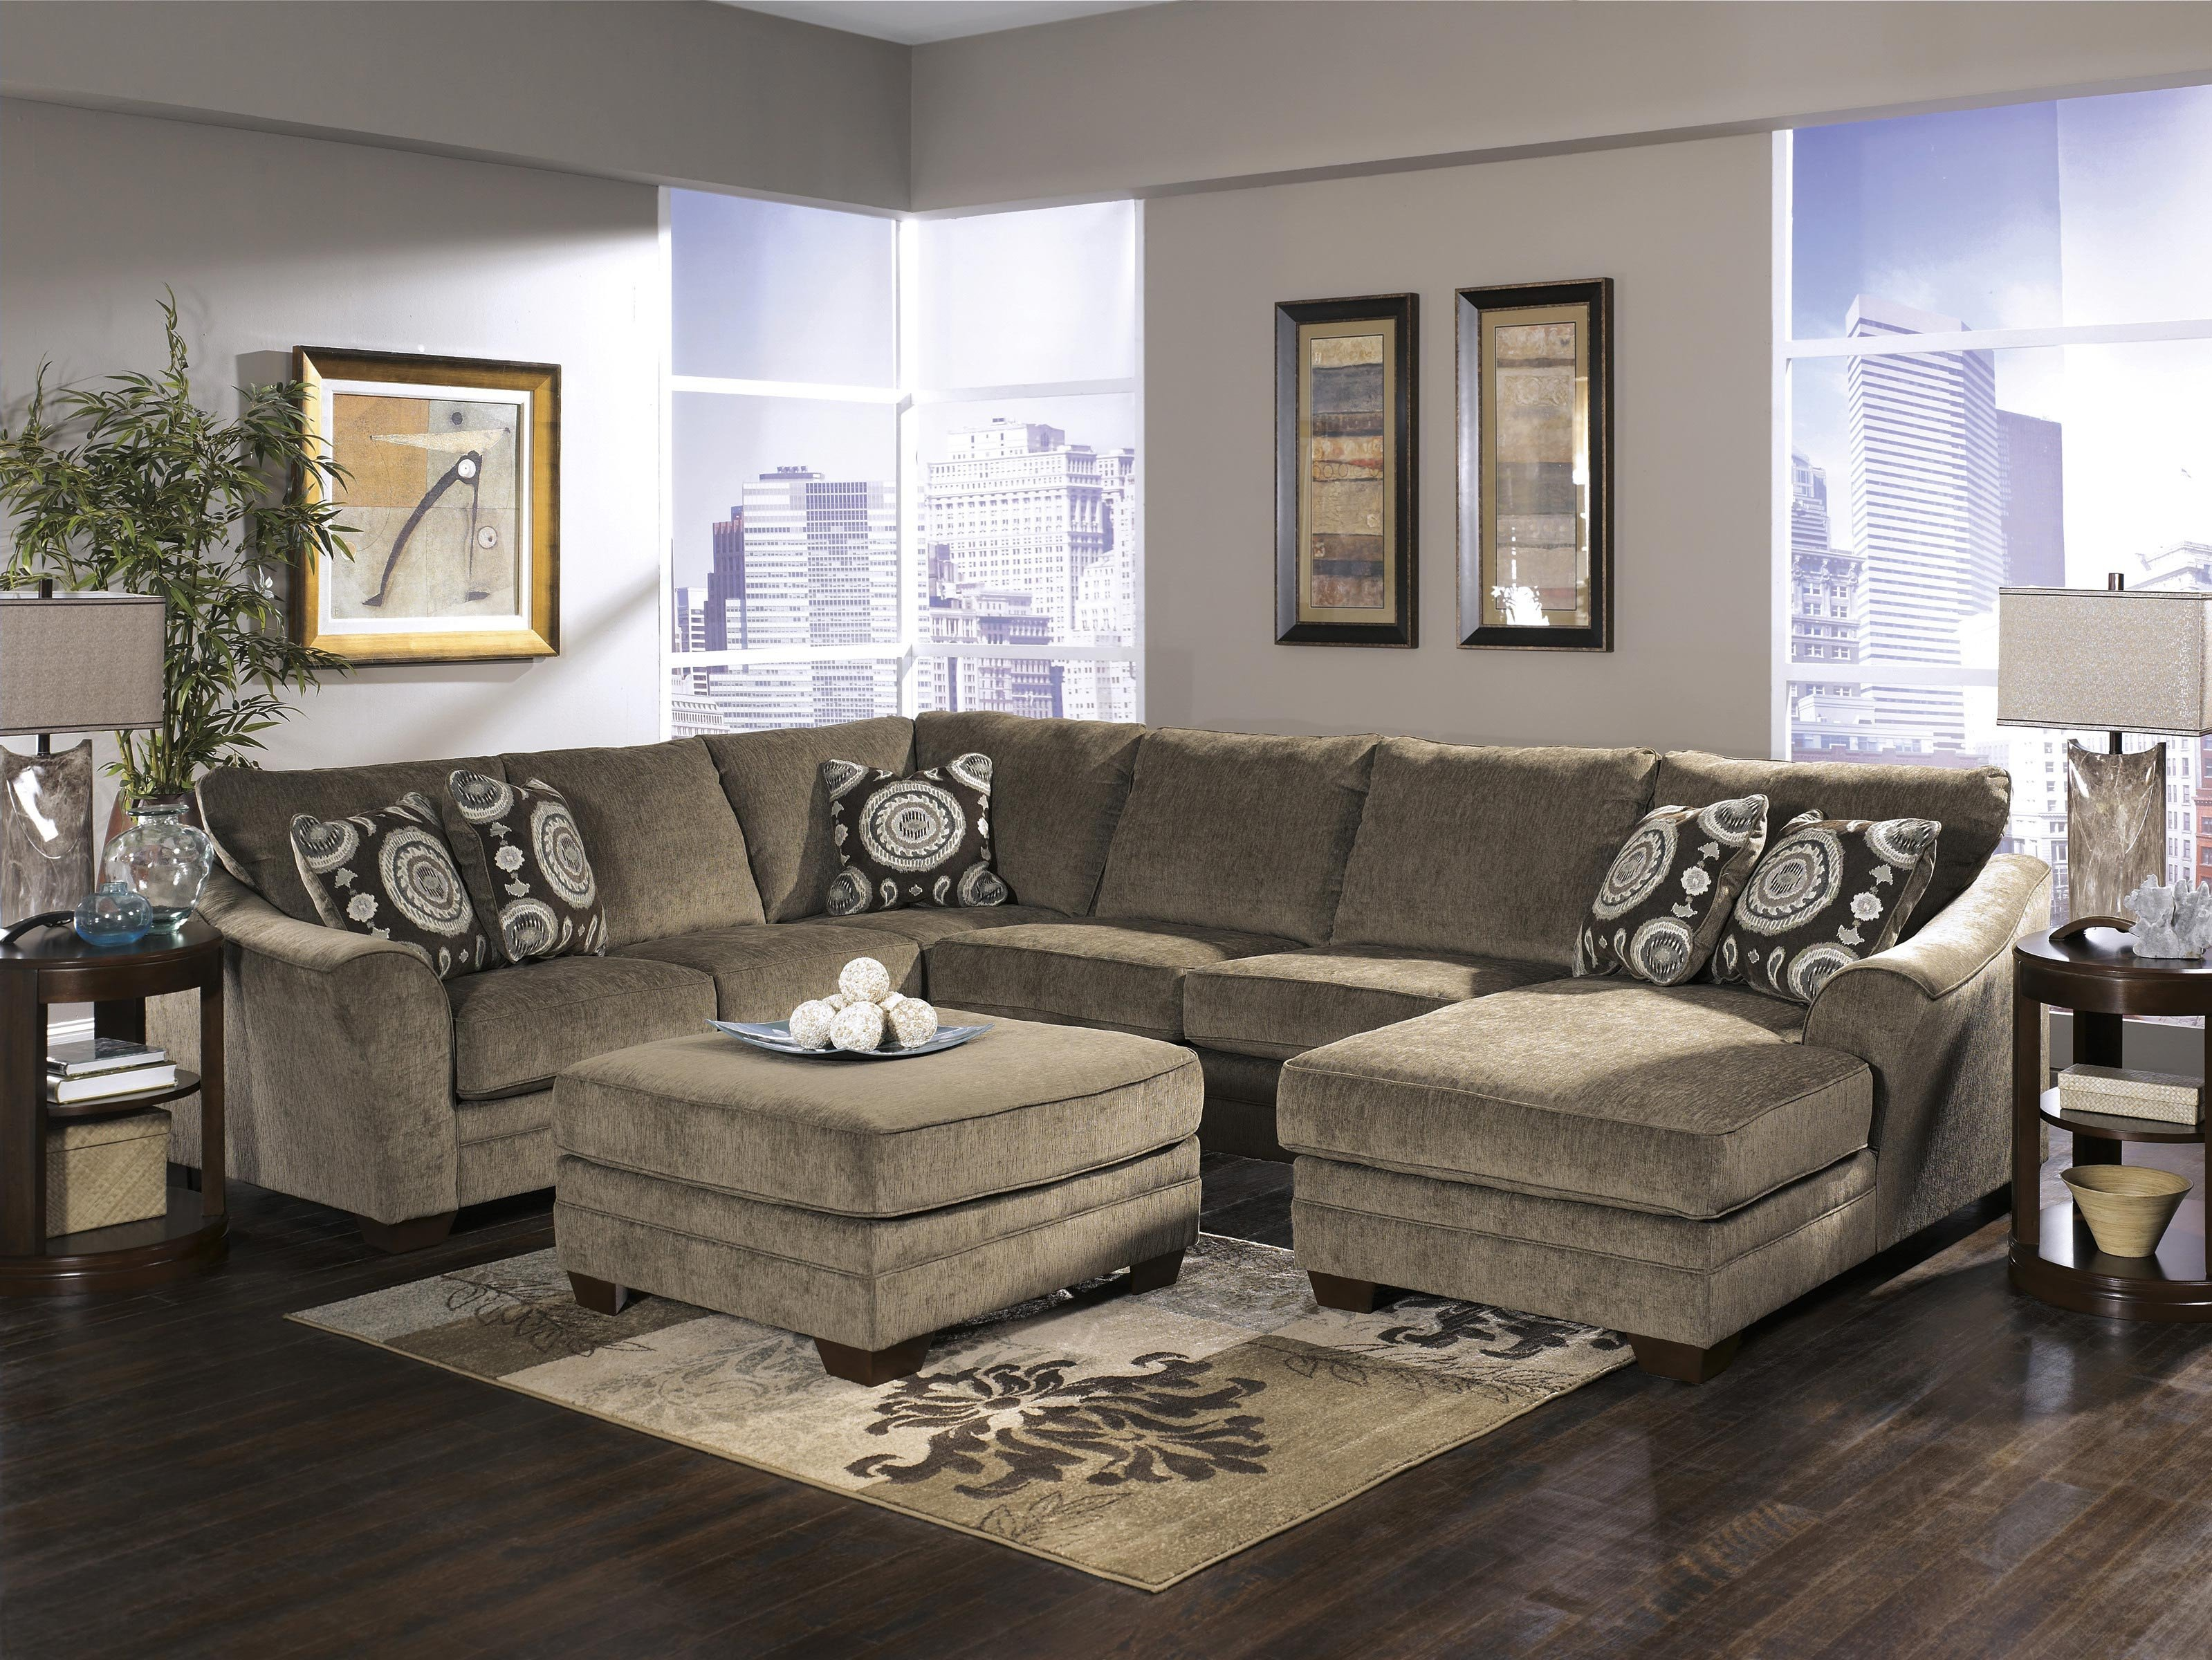 Living Room Decor with Sectional Living Room Ideas with Sectionals sofa for Small Living